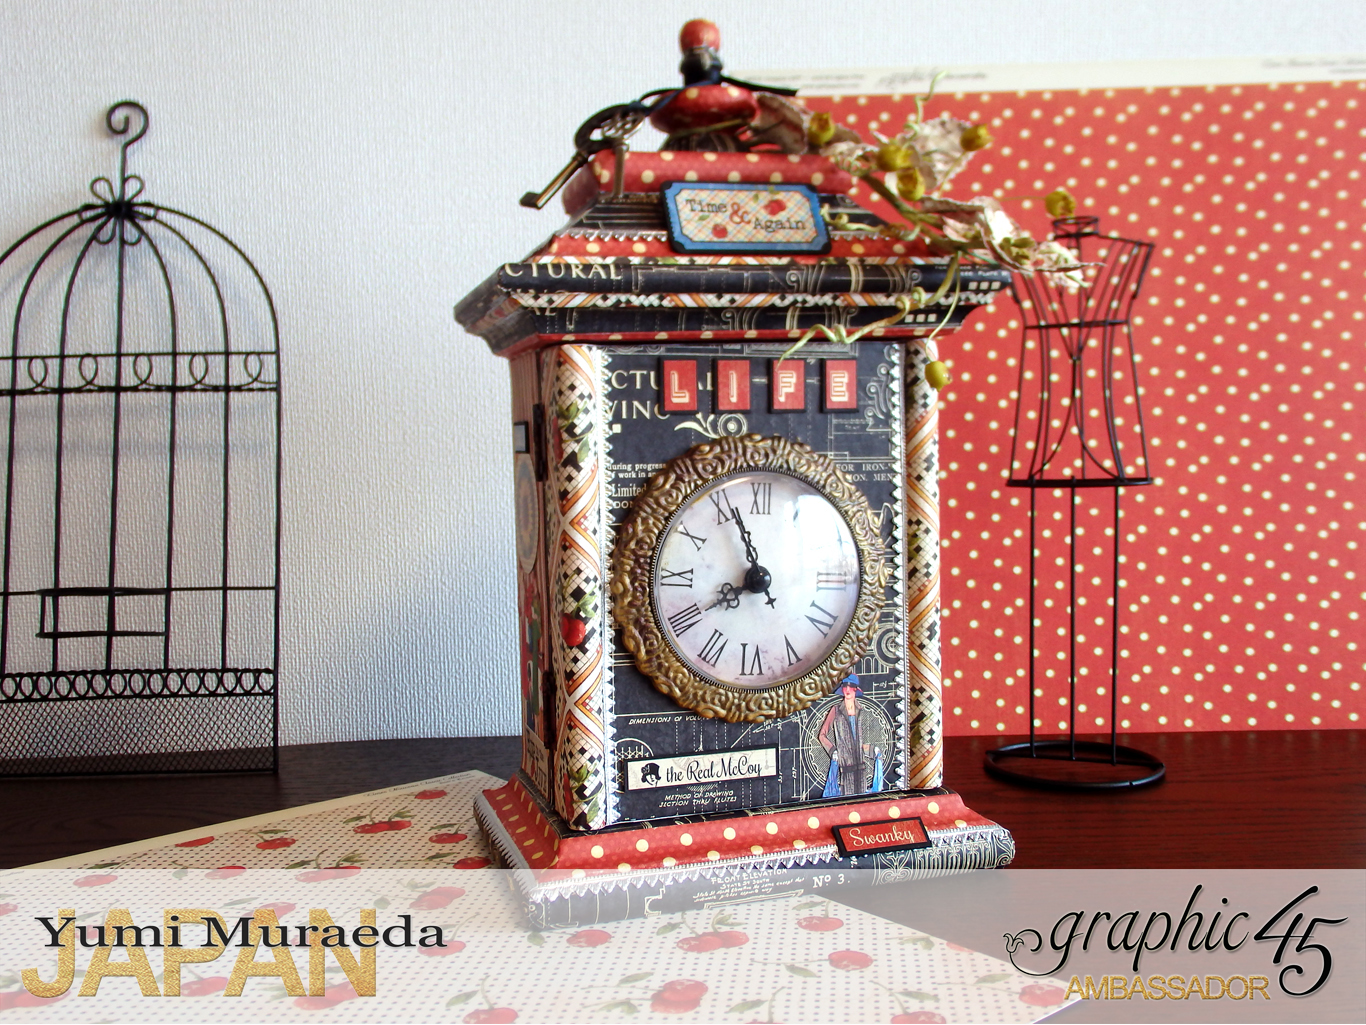 3Up Cycle Graphic45 DIY Craftpaper with Times Nouveau Secret Clock by Yumi Muraeada Product by Graphic 45 Photo